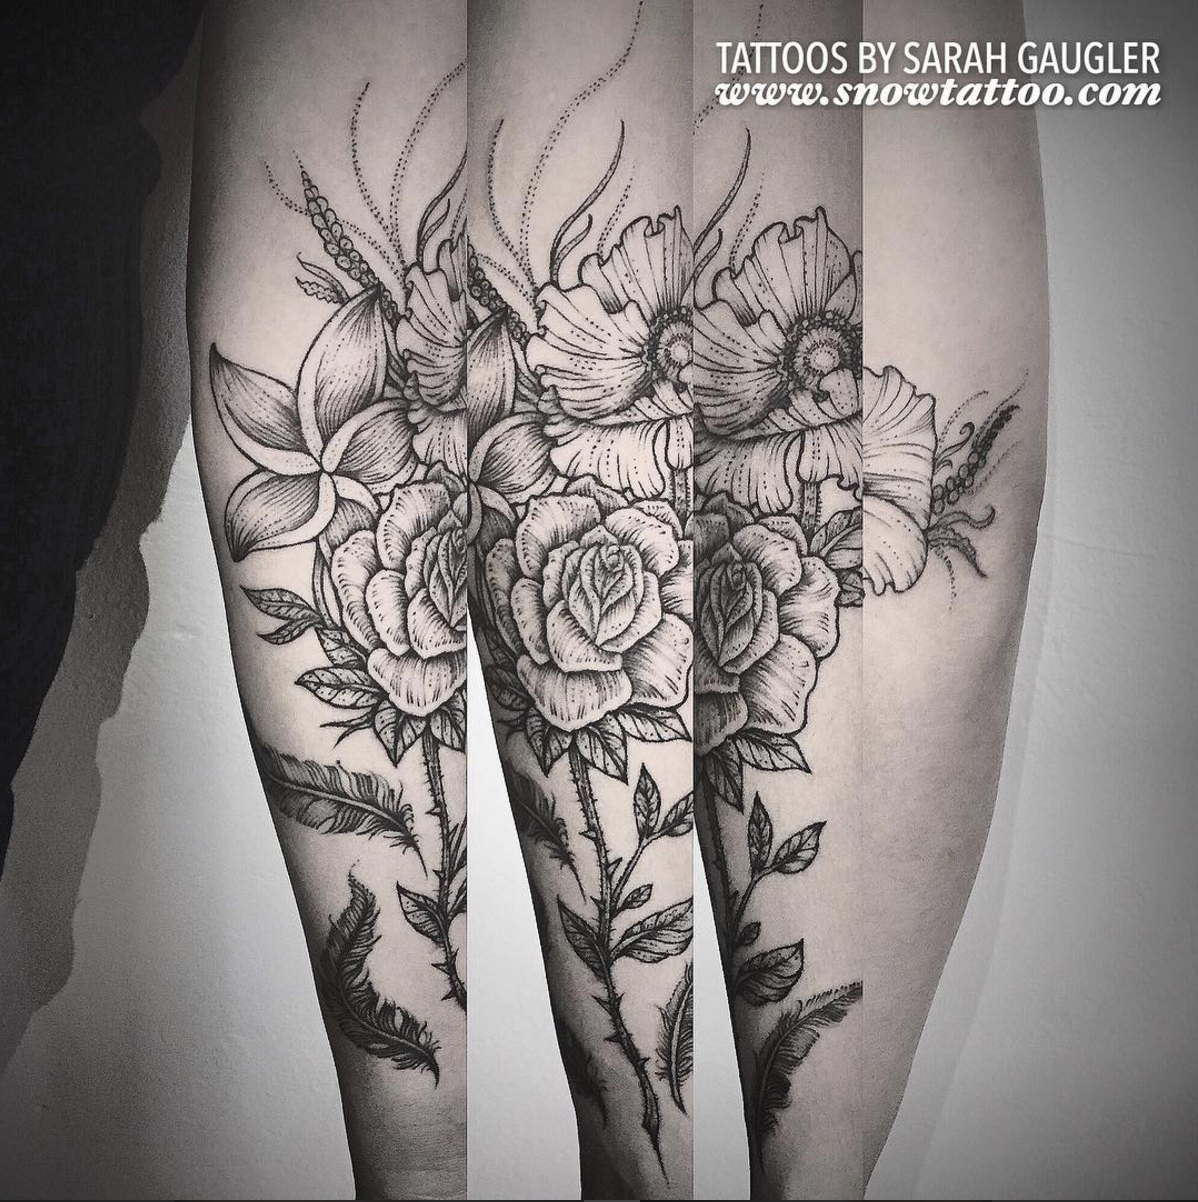 Cusotm+Sarahgaugler+FLORAL+Flower_Poppies_Rose_Boquet+Tattoo+Line+Art+Original+Flash+Tattoo+by+Sarah+Gaugler+at+Snow+Tattoo+New+York+NYC.jpg